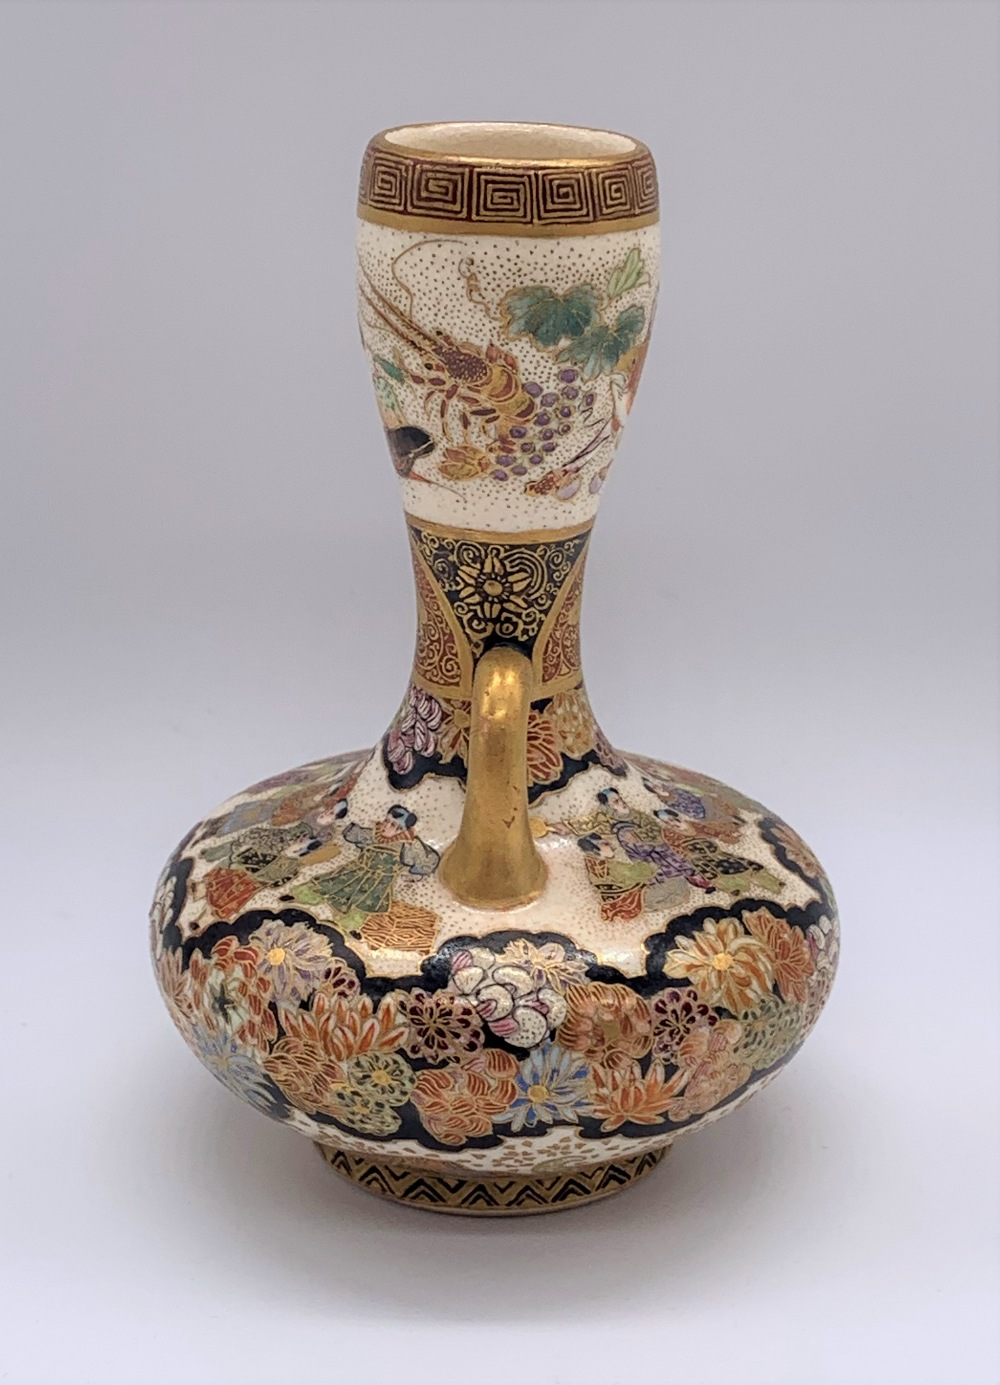 A Japanese Meiji period Satsuma twin handled vase of small proportions decorated with figures and - Image 2 of 7